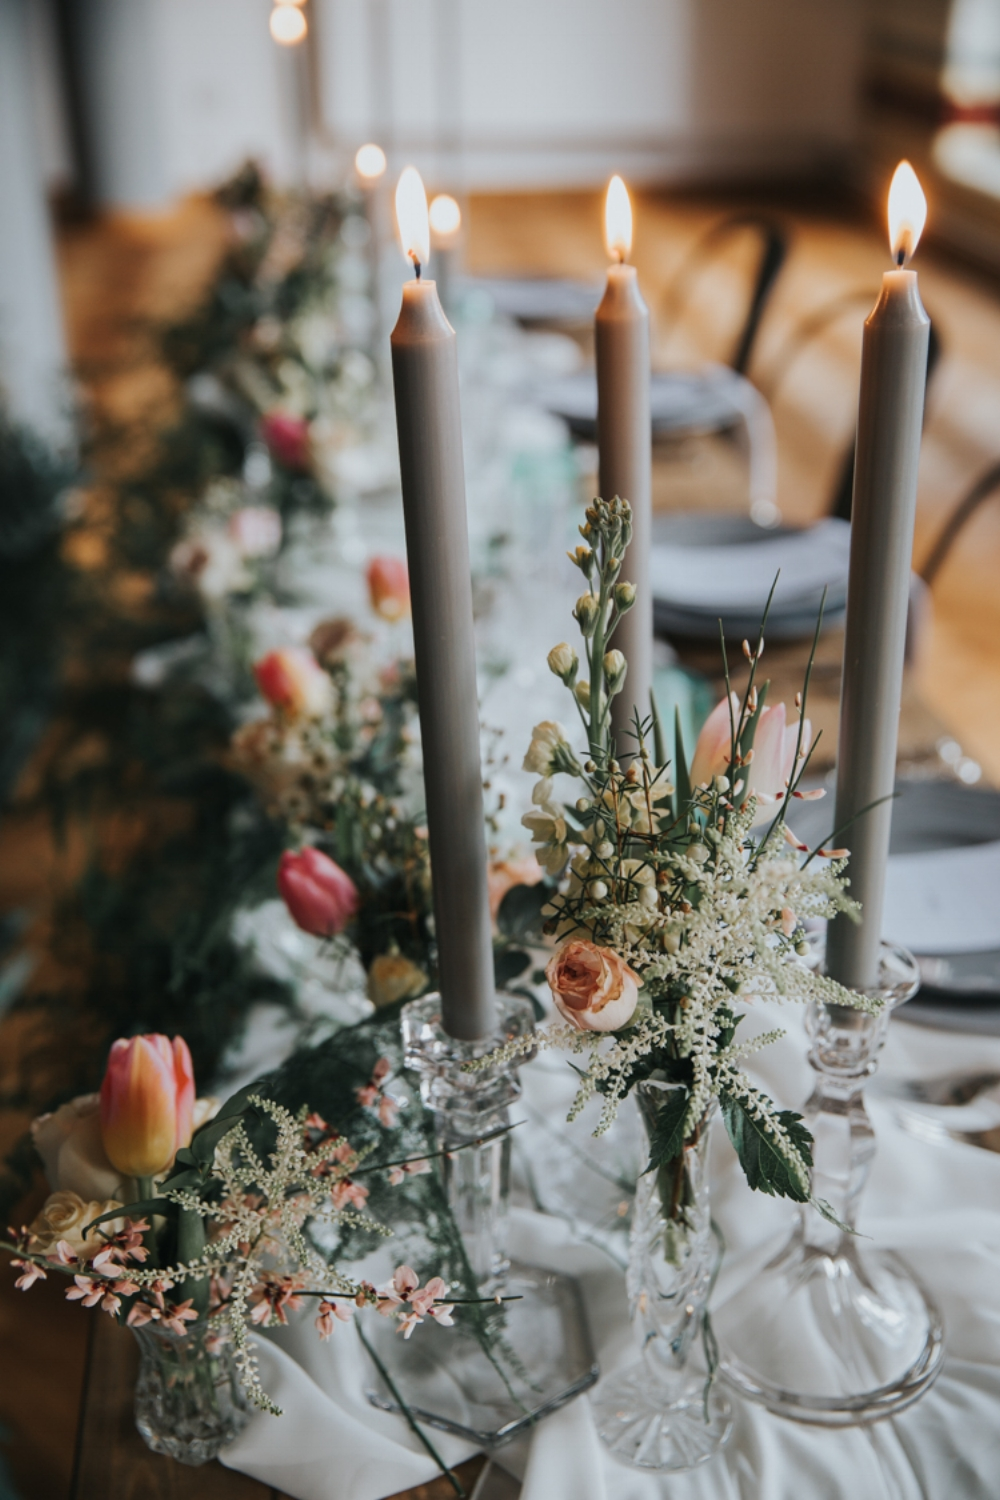 Into the Wild styling - Save the Date Stylist - Dreamy wedding inspiration 1